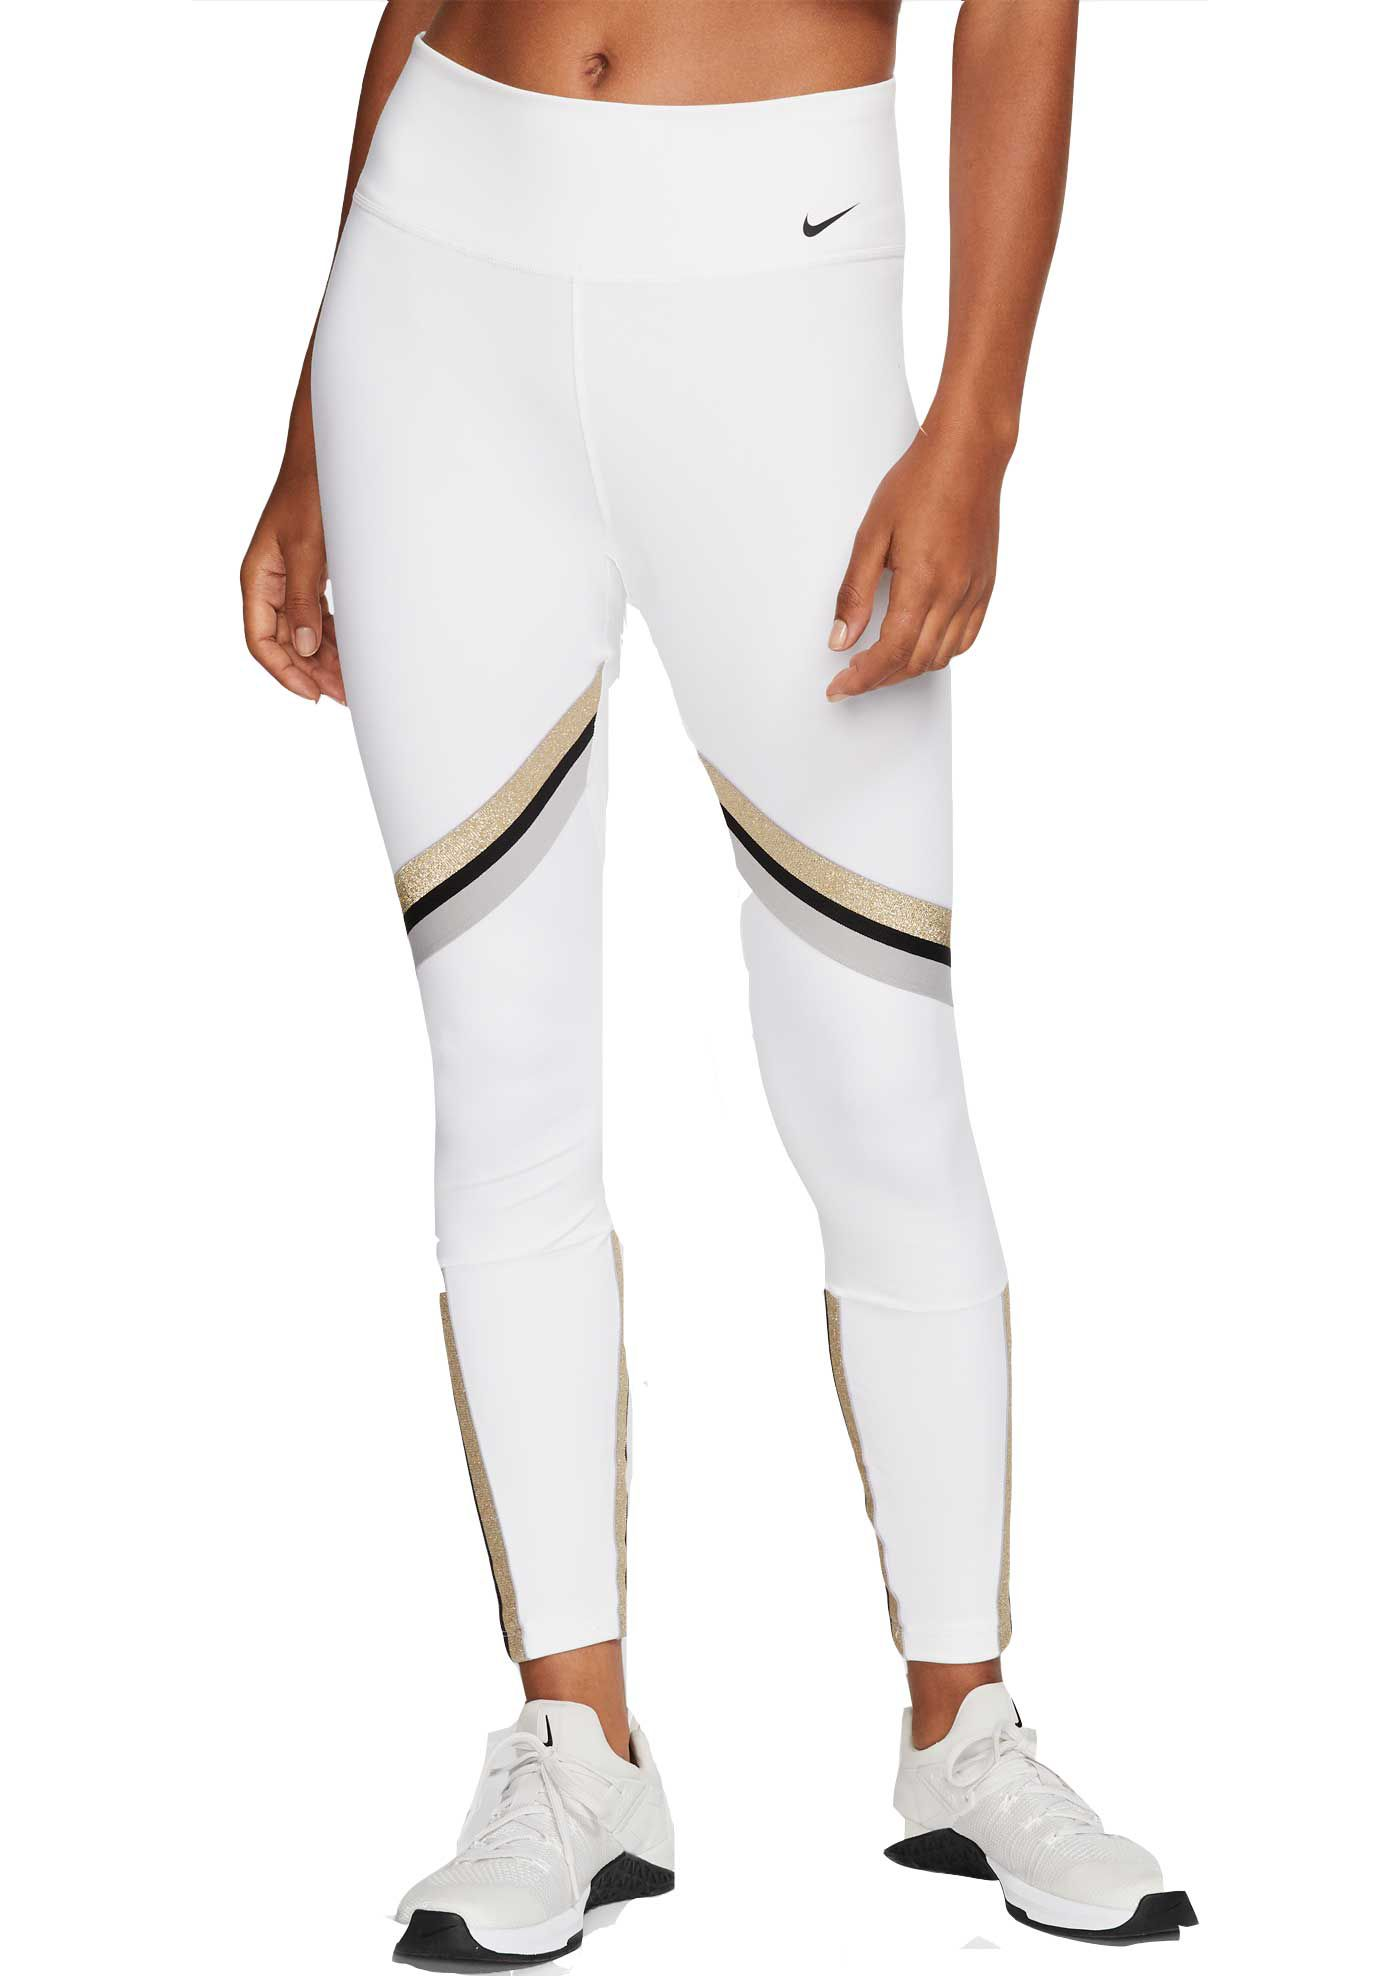 Nike One Women's Glam Dunk 7/8 Training Tights